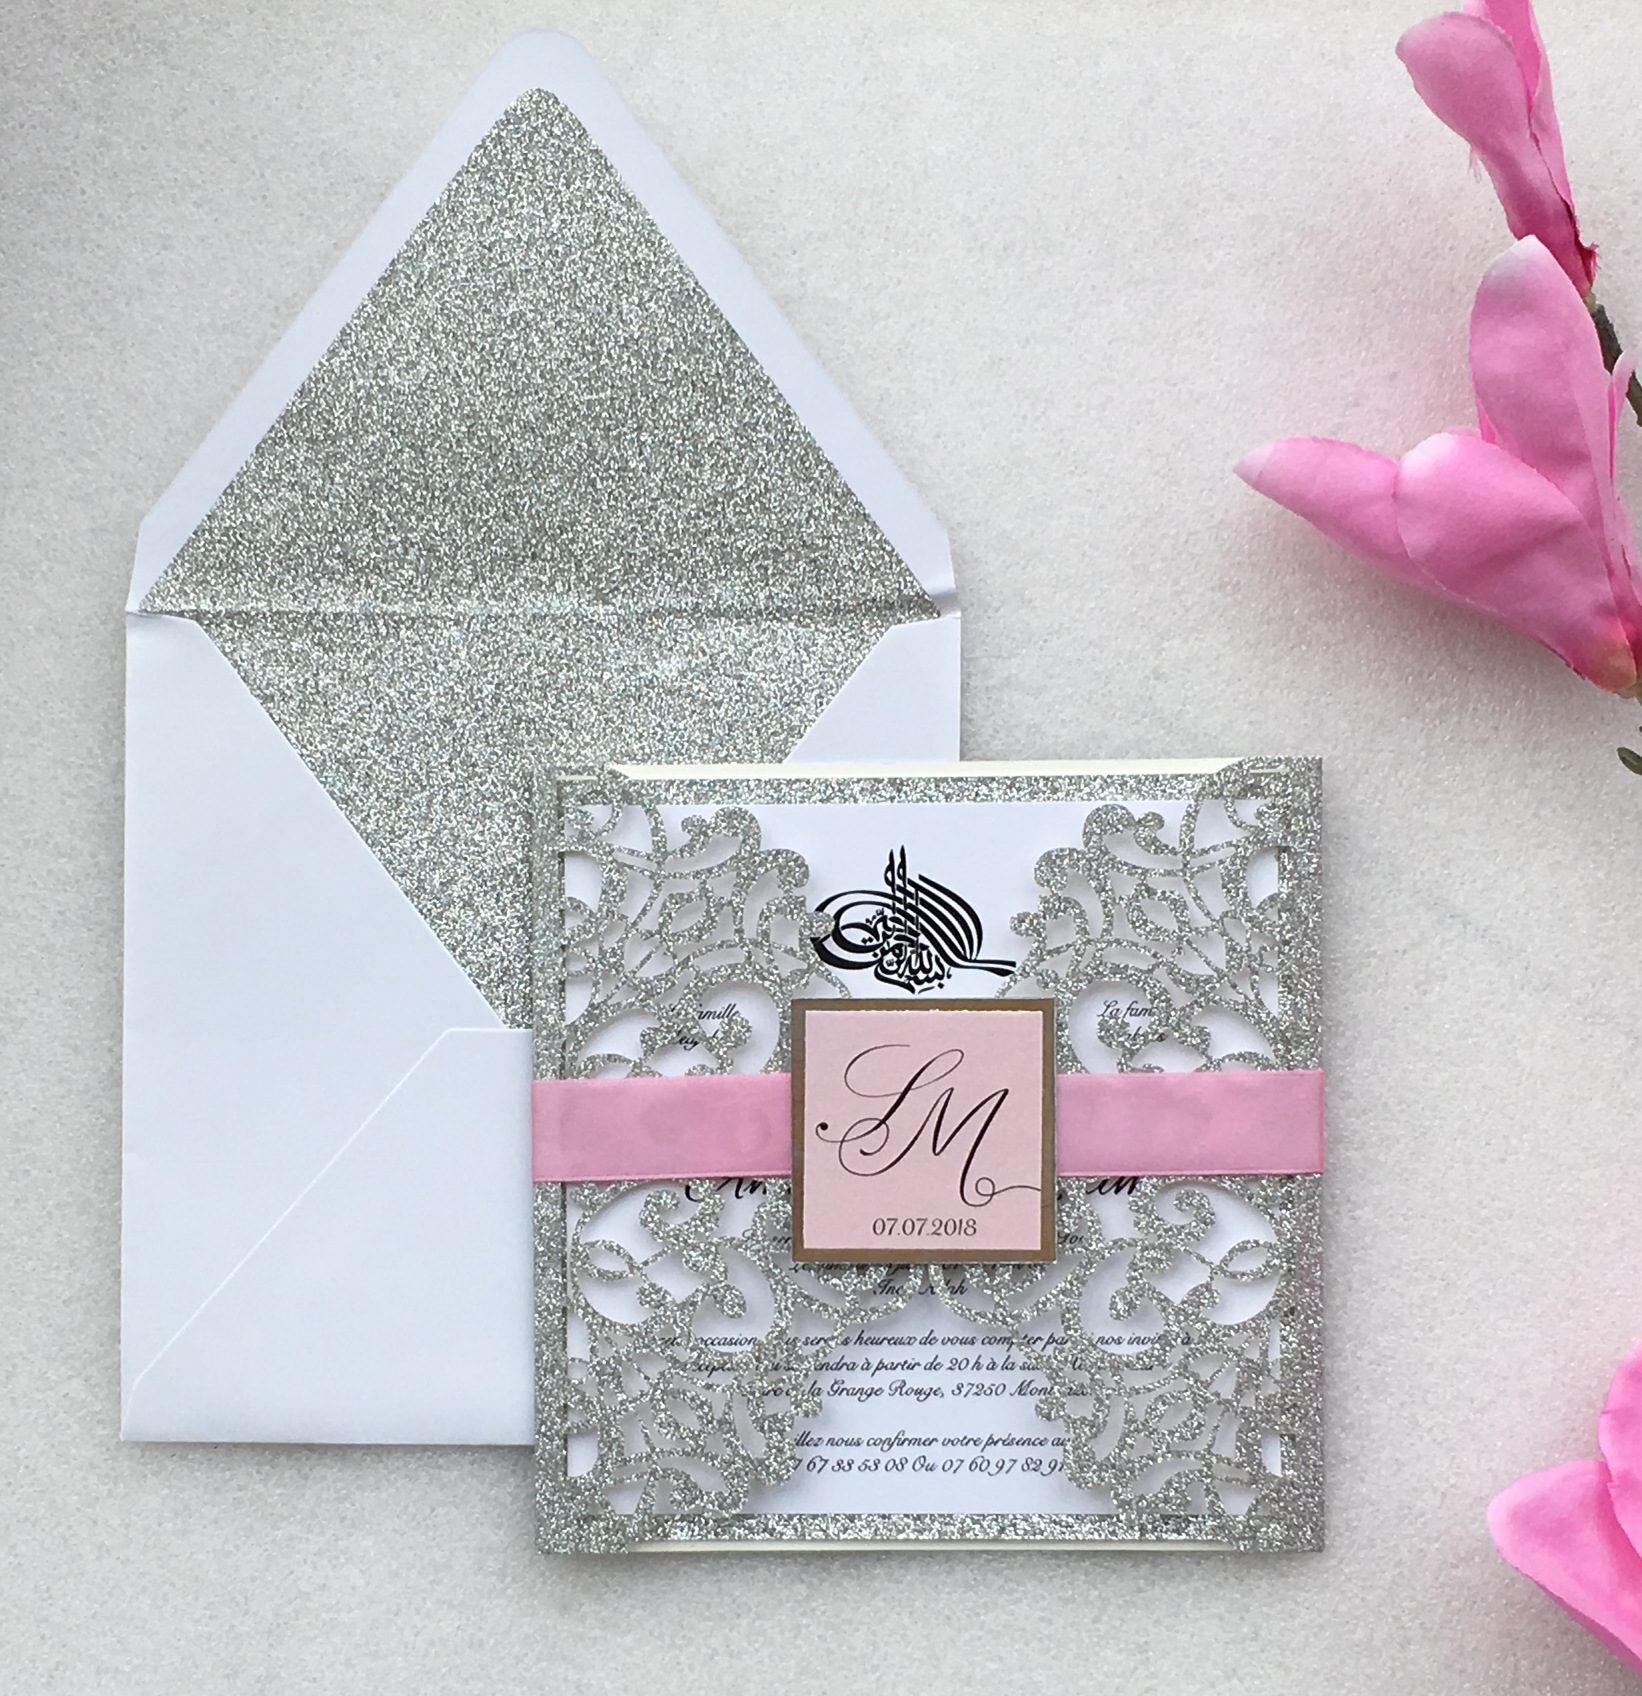 Customized Laser Cut Silver Wedding Party Invitations Card Marriage Engagement Invitation Cards 100 Sets Express Shipping